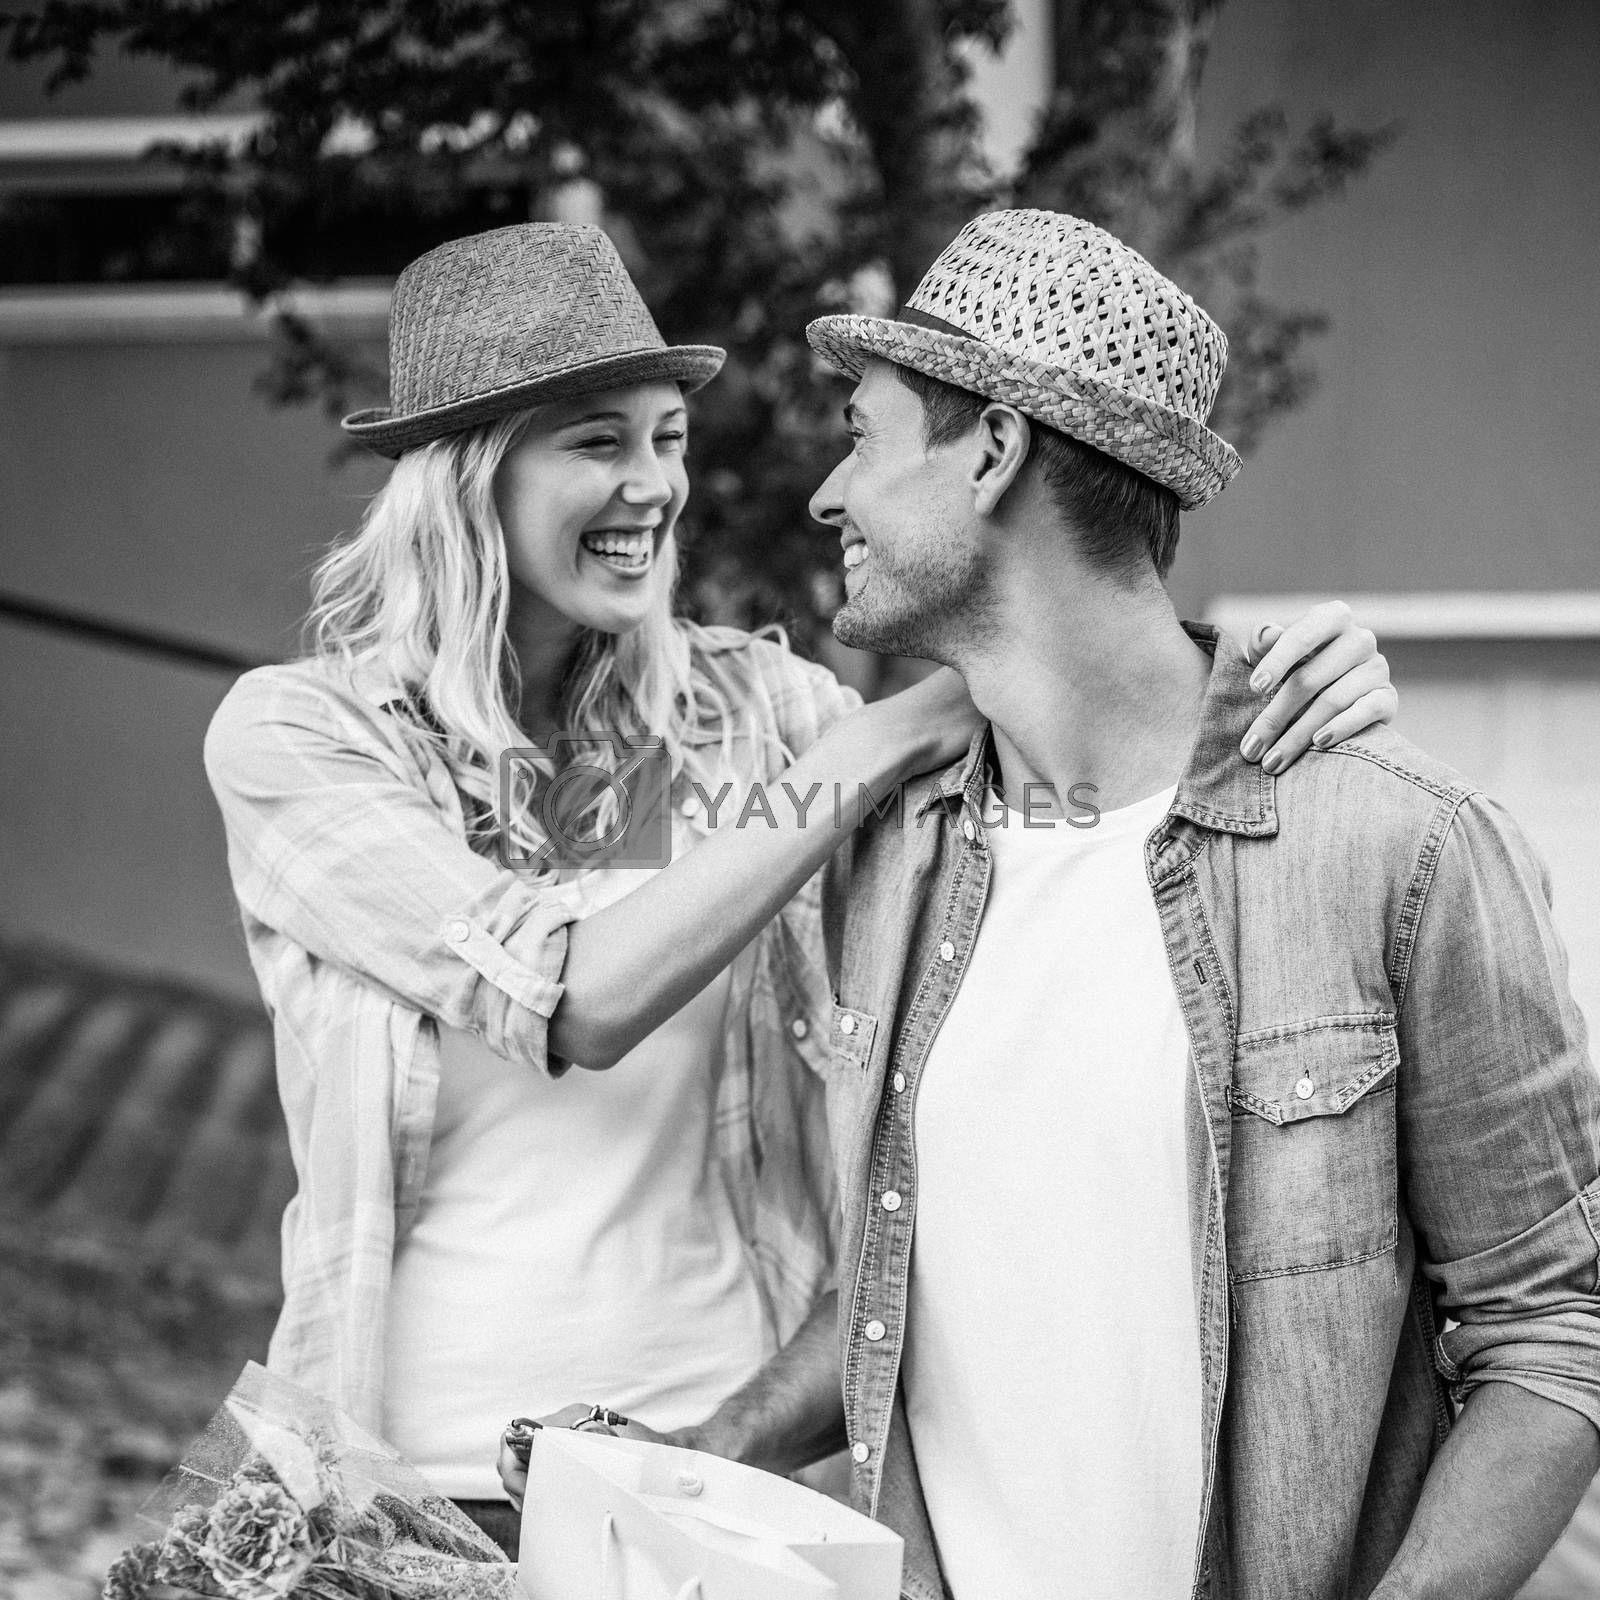 Hip young couple going for a bike ride in black and white